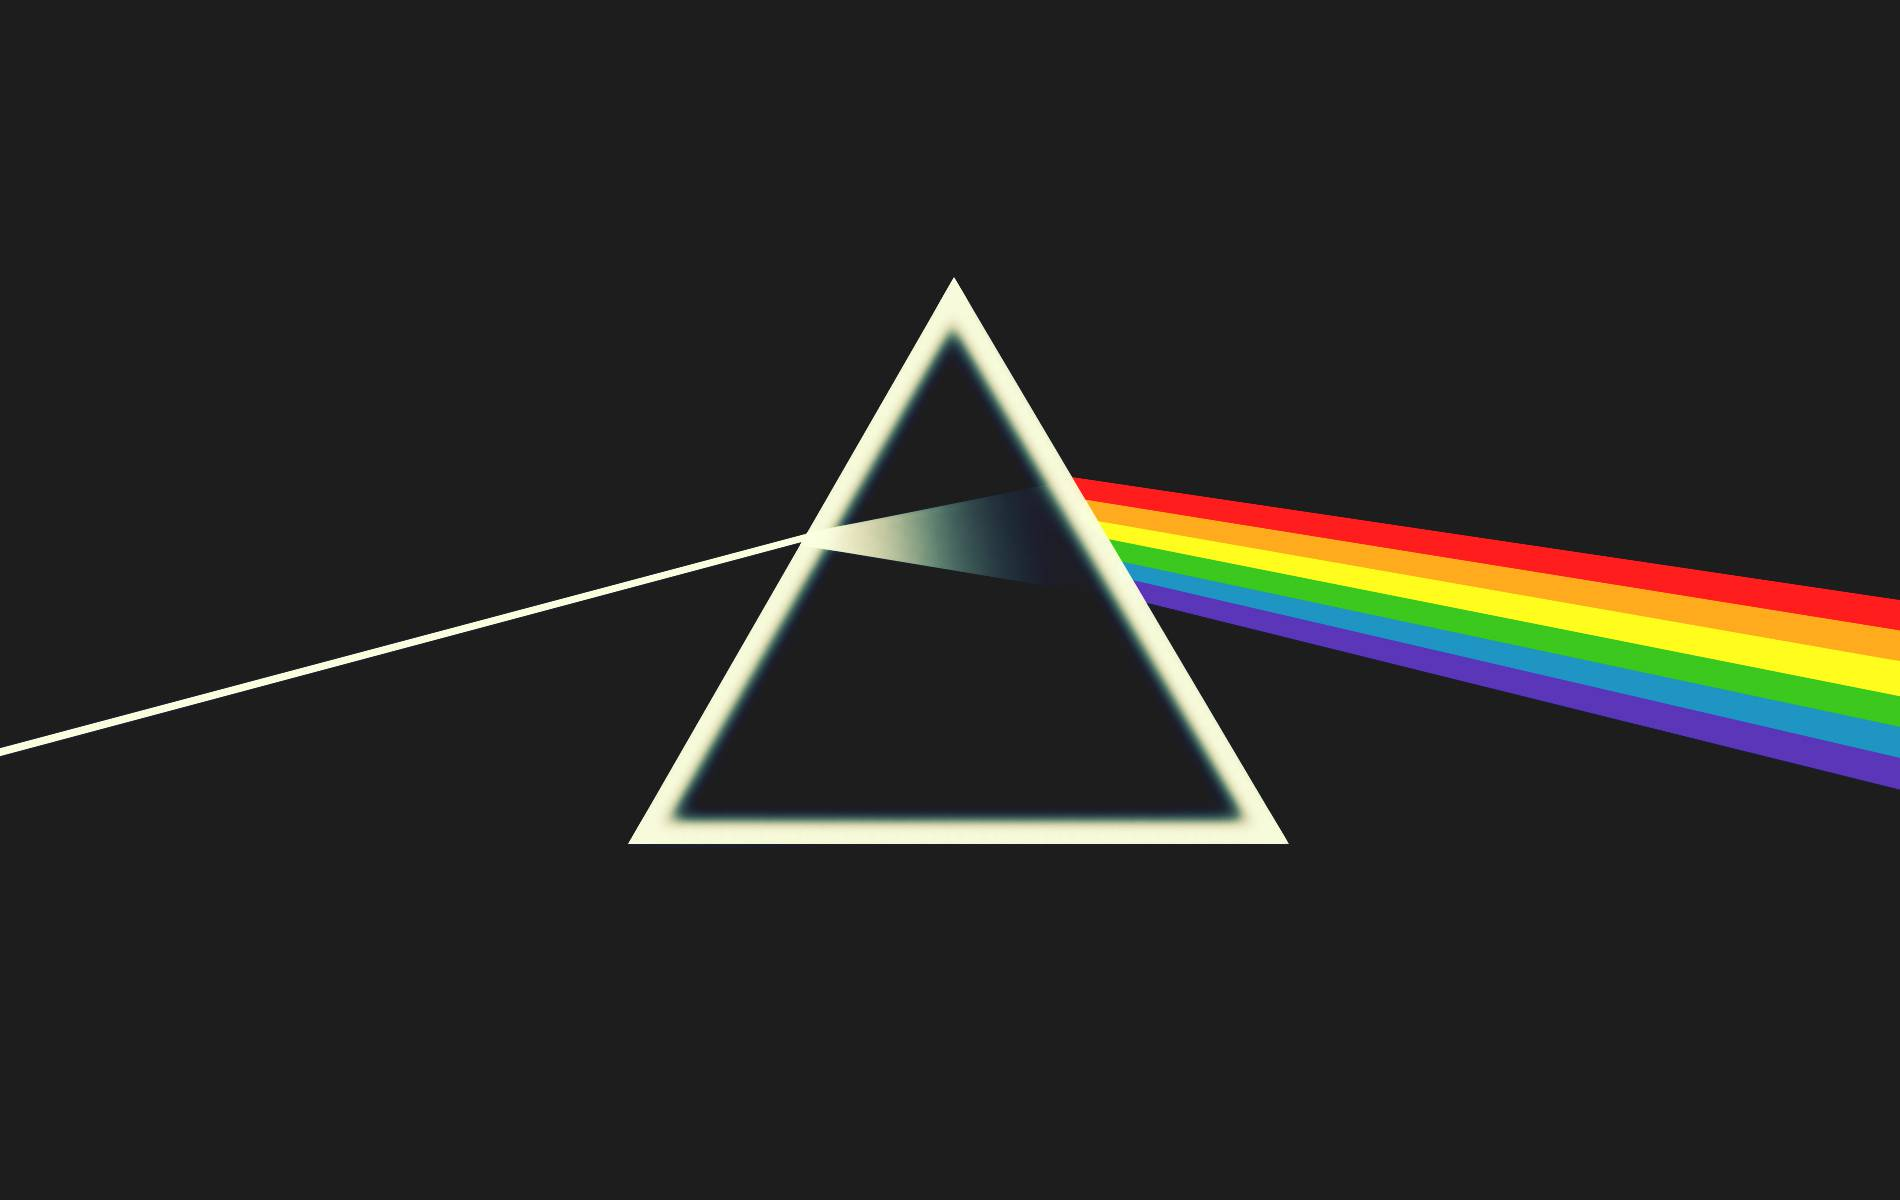 Albumet The dark side of the moon med Pink Floyd